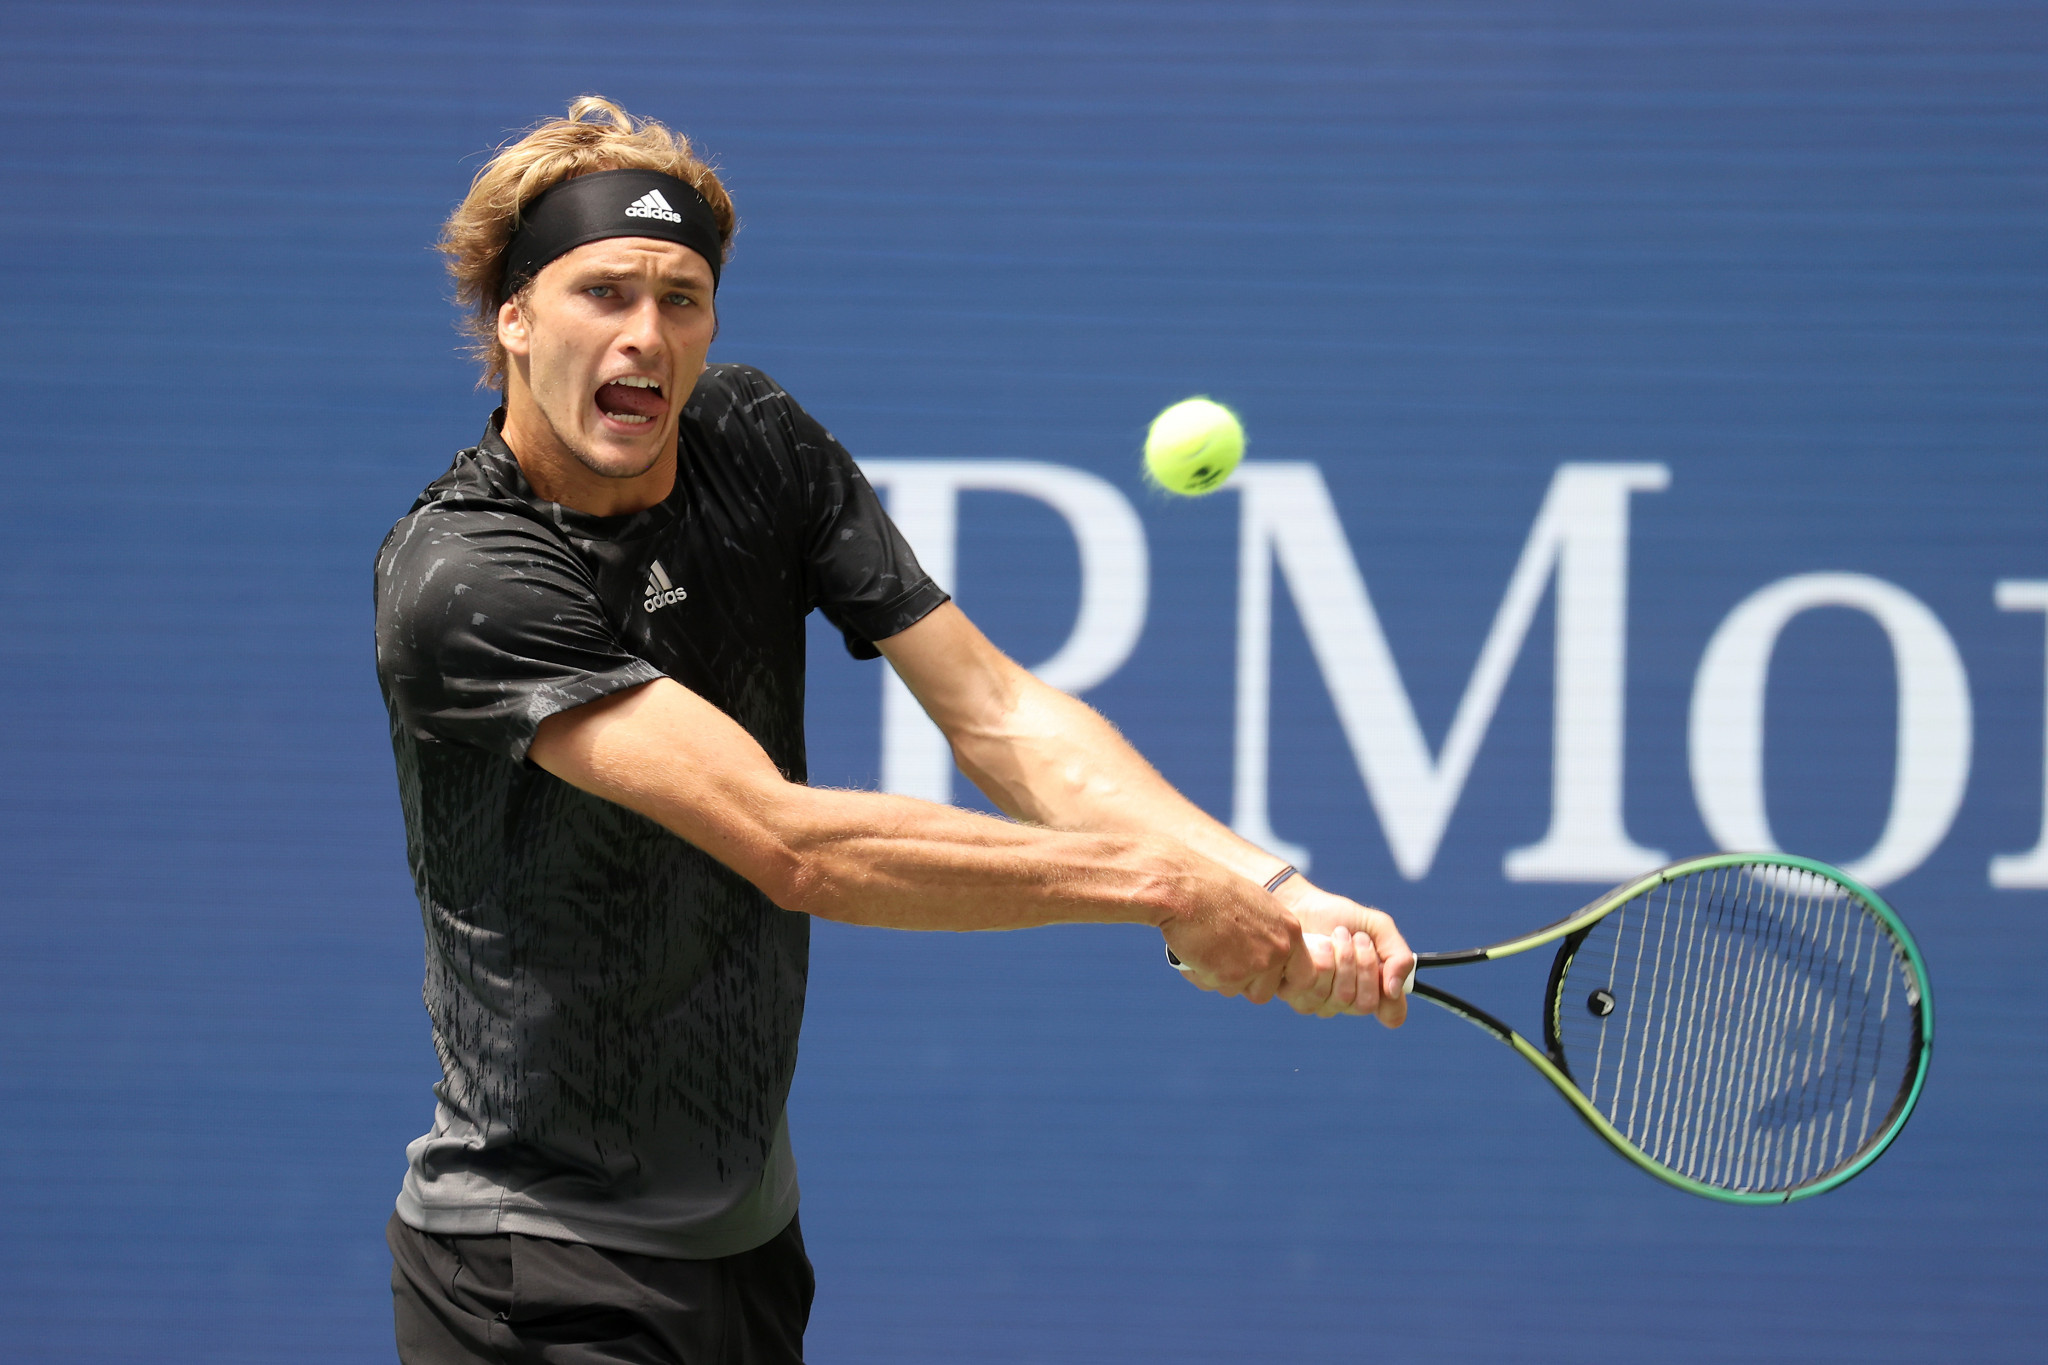 Germany's Alexander Zverev, whose best performance at the US Open was runner-up in 2020, smashed 18 aces as he defeated the United States Sam Querrey in the first round of this tournament ©Getty Images